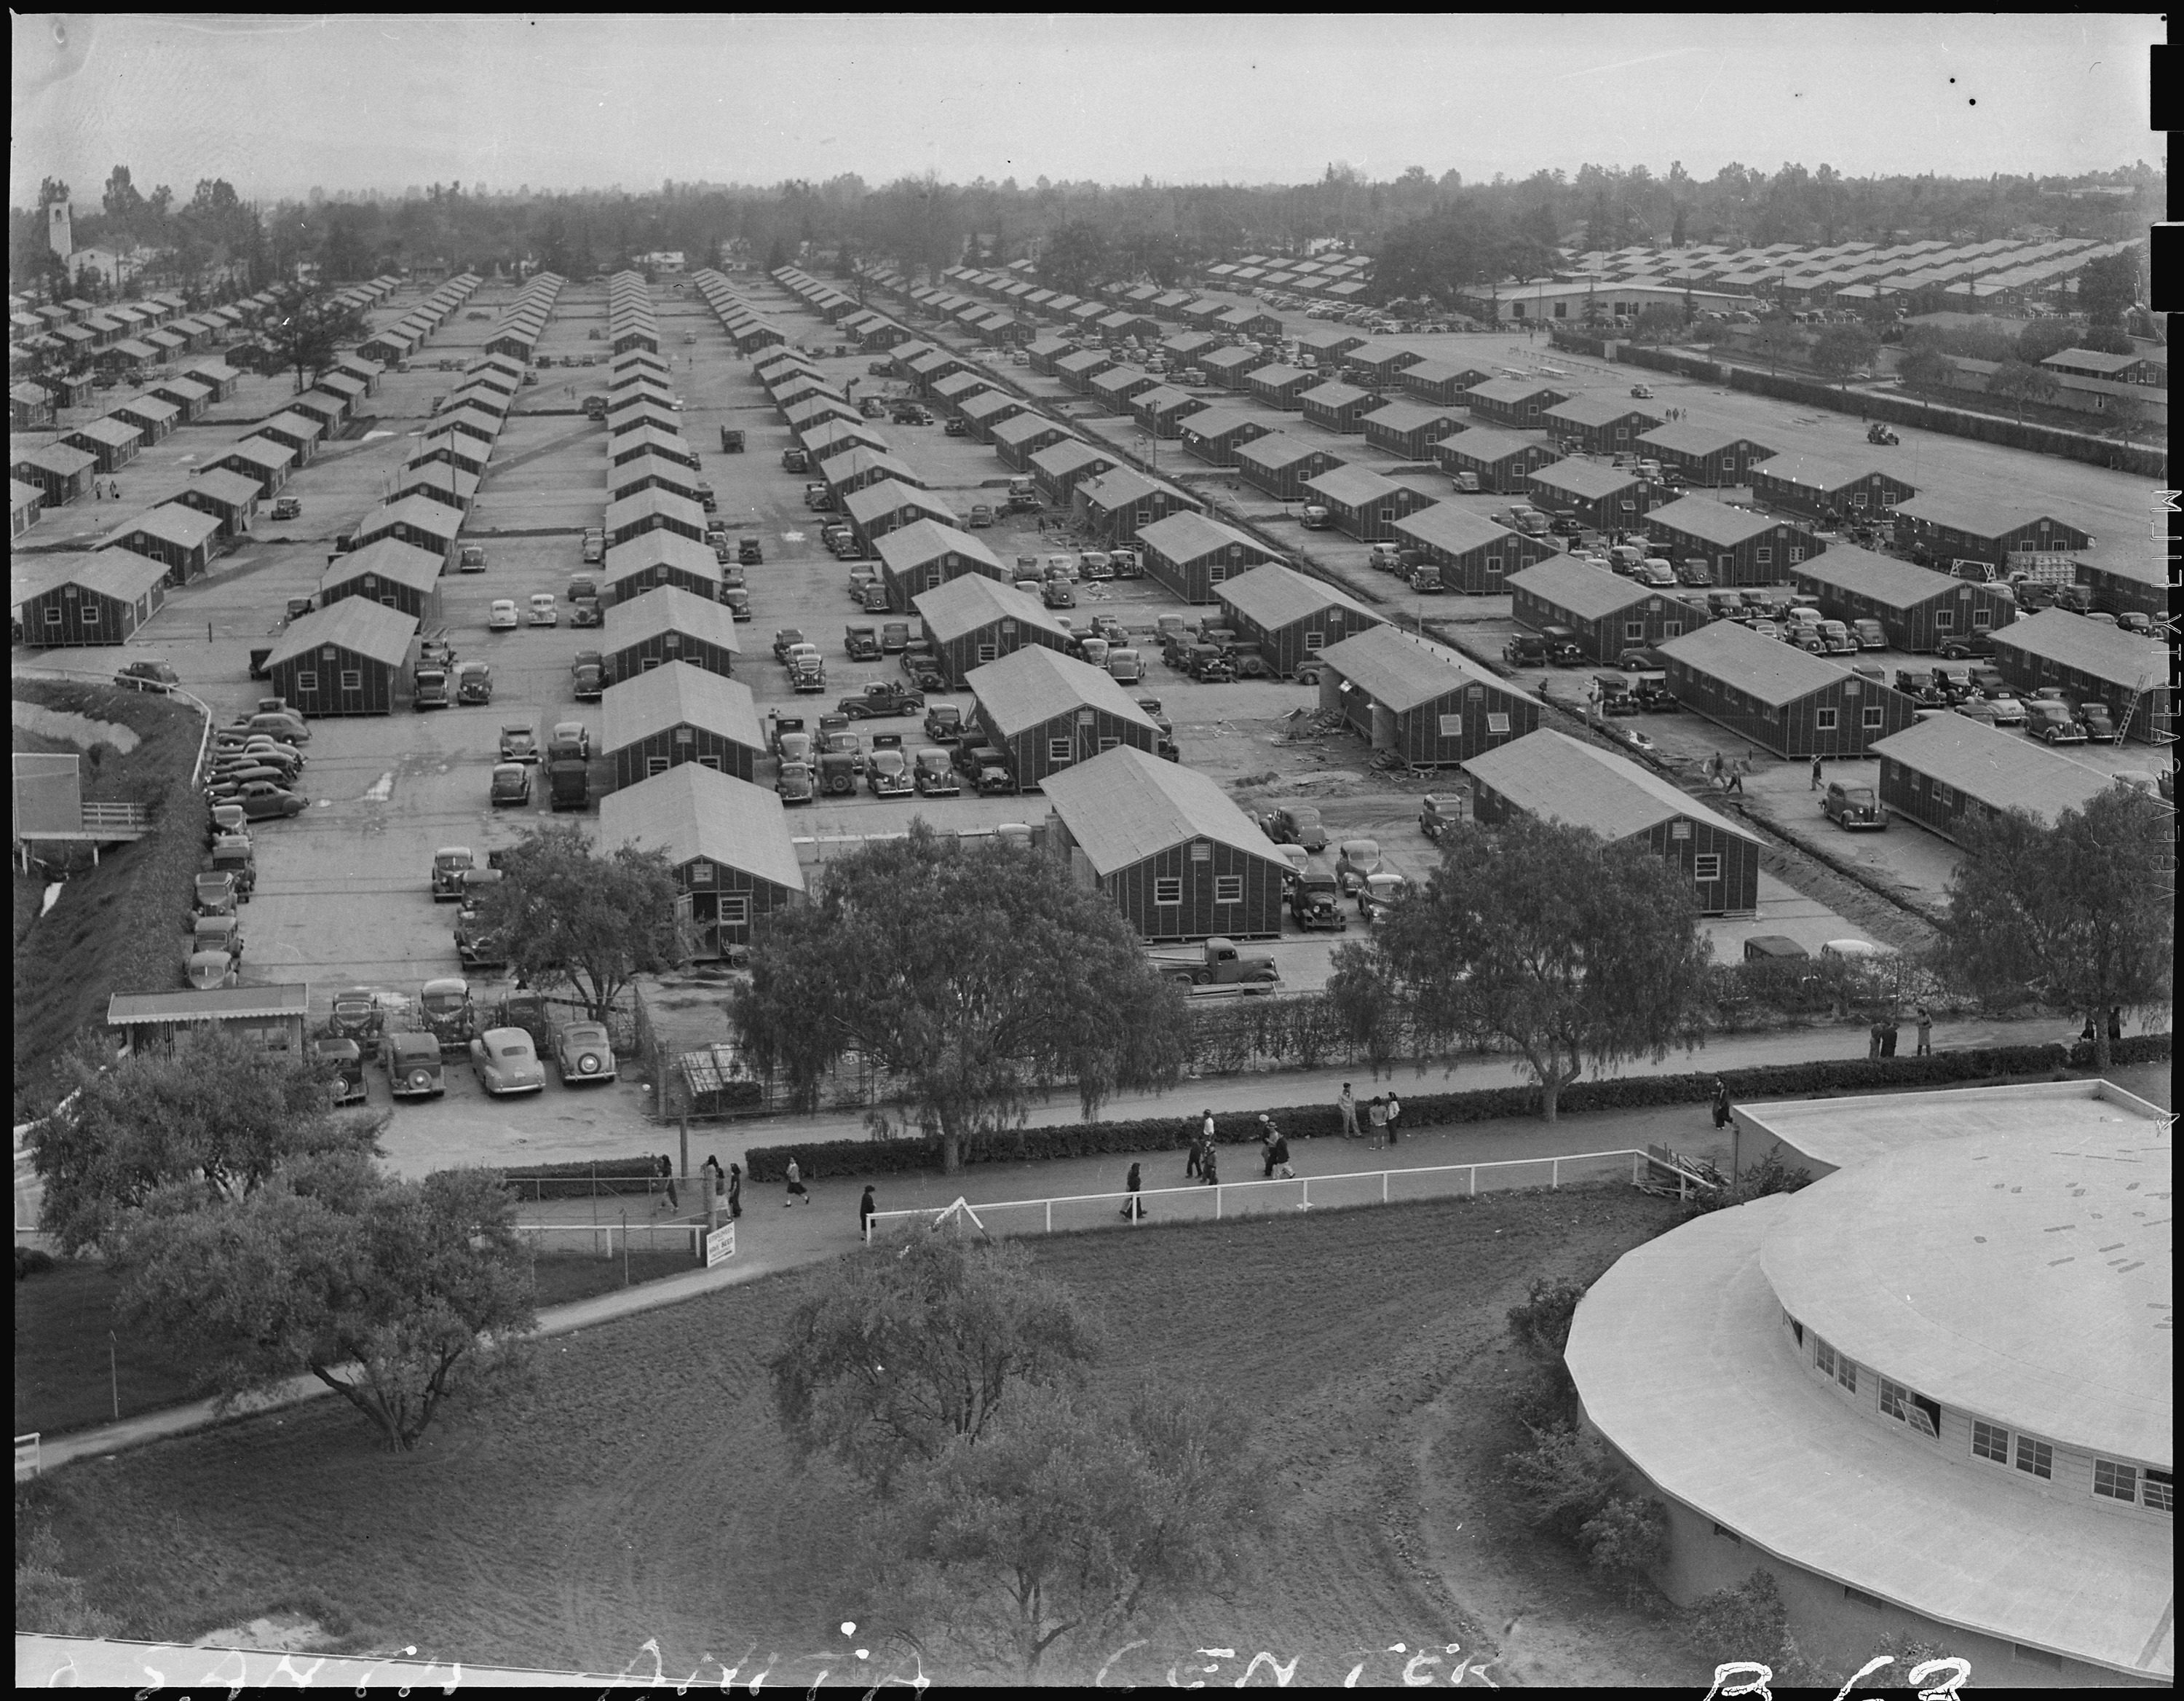 Santa Anita Assembly Center, Arcadia, California. A panoramic view of the Santa Anita assembly center where evacuees from this section await transfer to War Relocation Authority centers to spend the duration. Photo by Clem Albers (NARA record: 8452194).